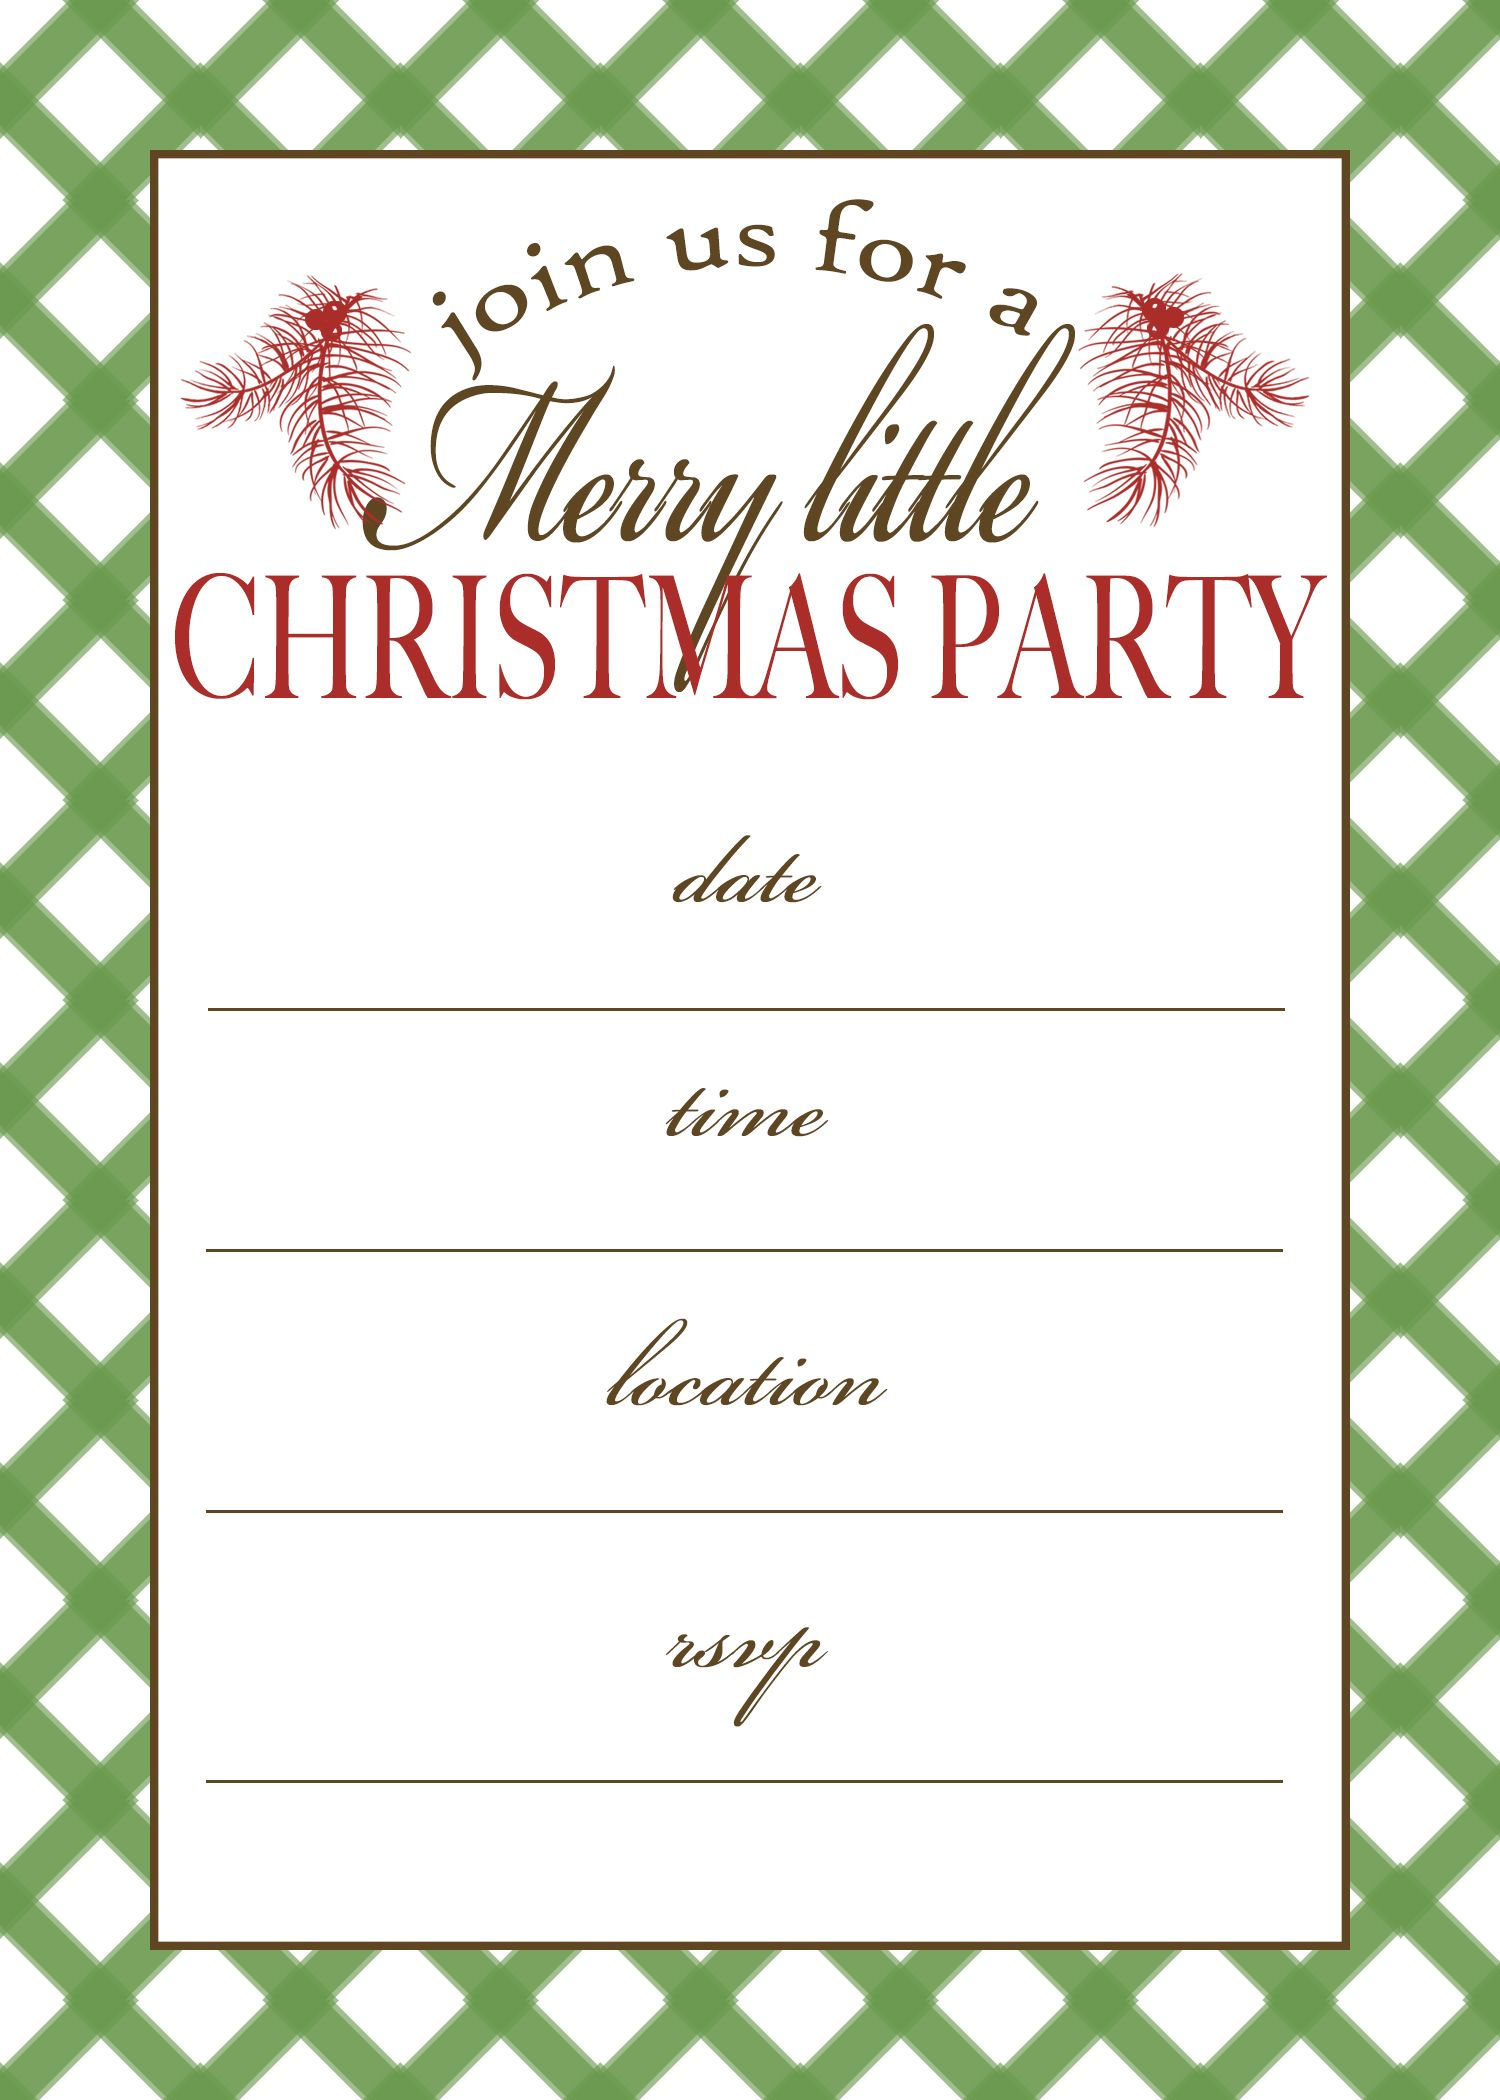 photograph about Free Printable Christmas Party Flyer Templates named Totally free Printable Xmas Celebration Invitation crafts